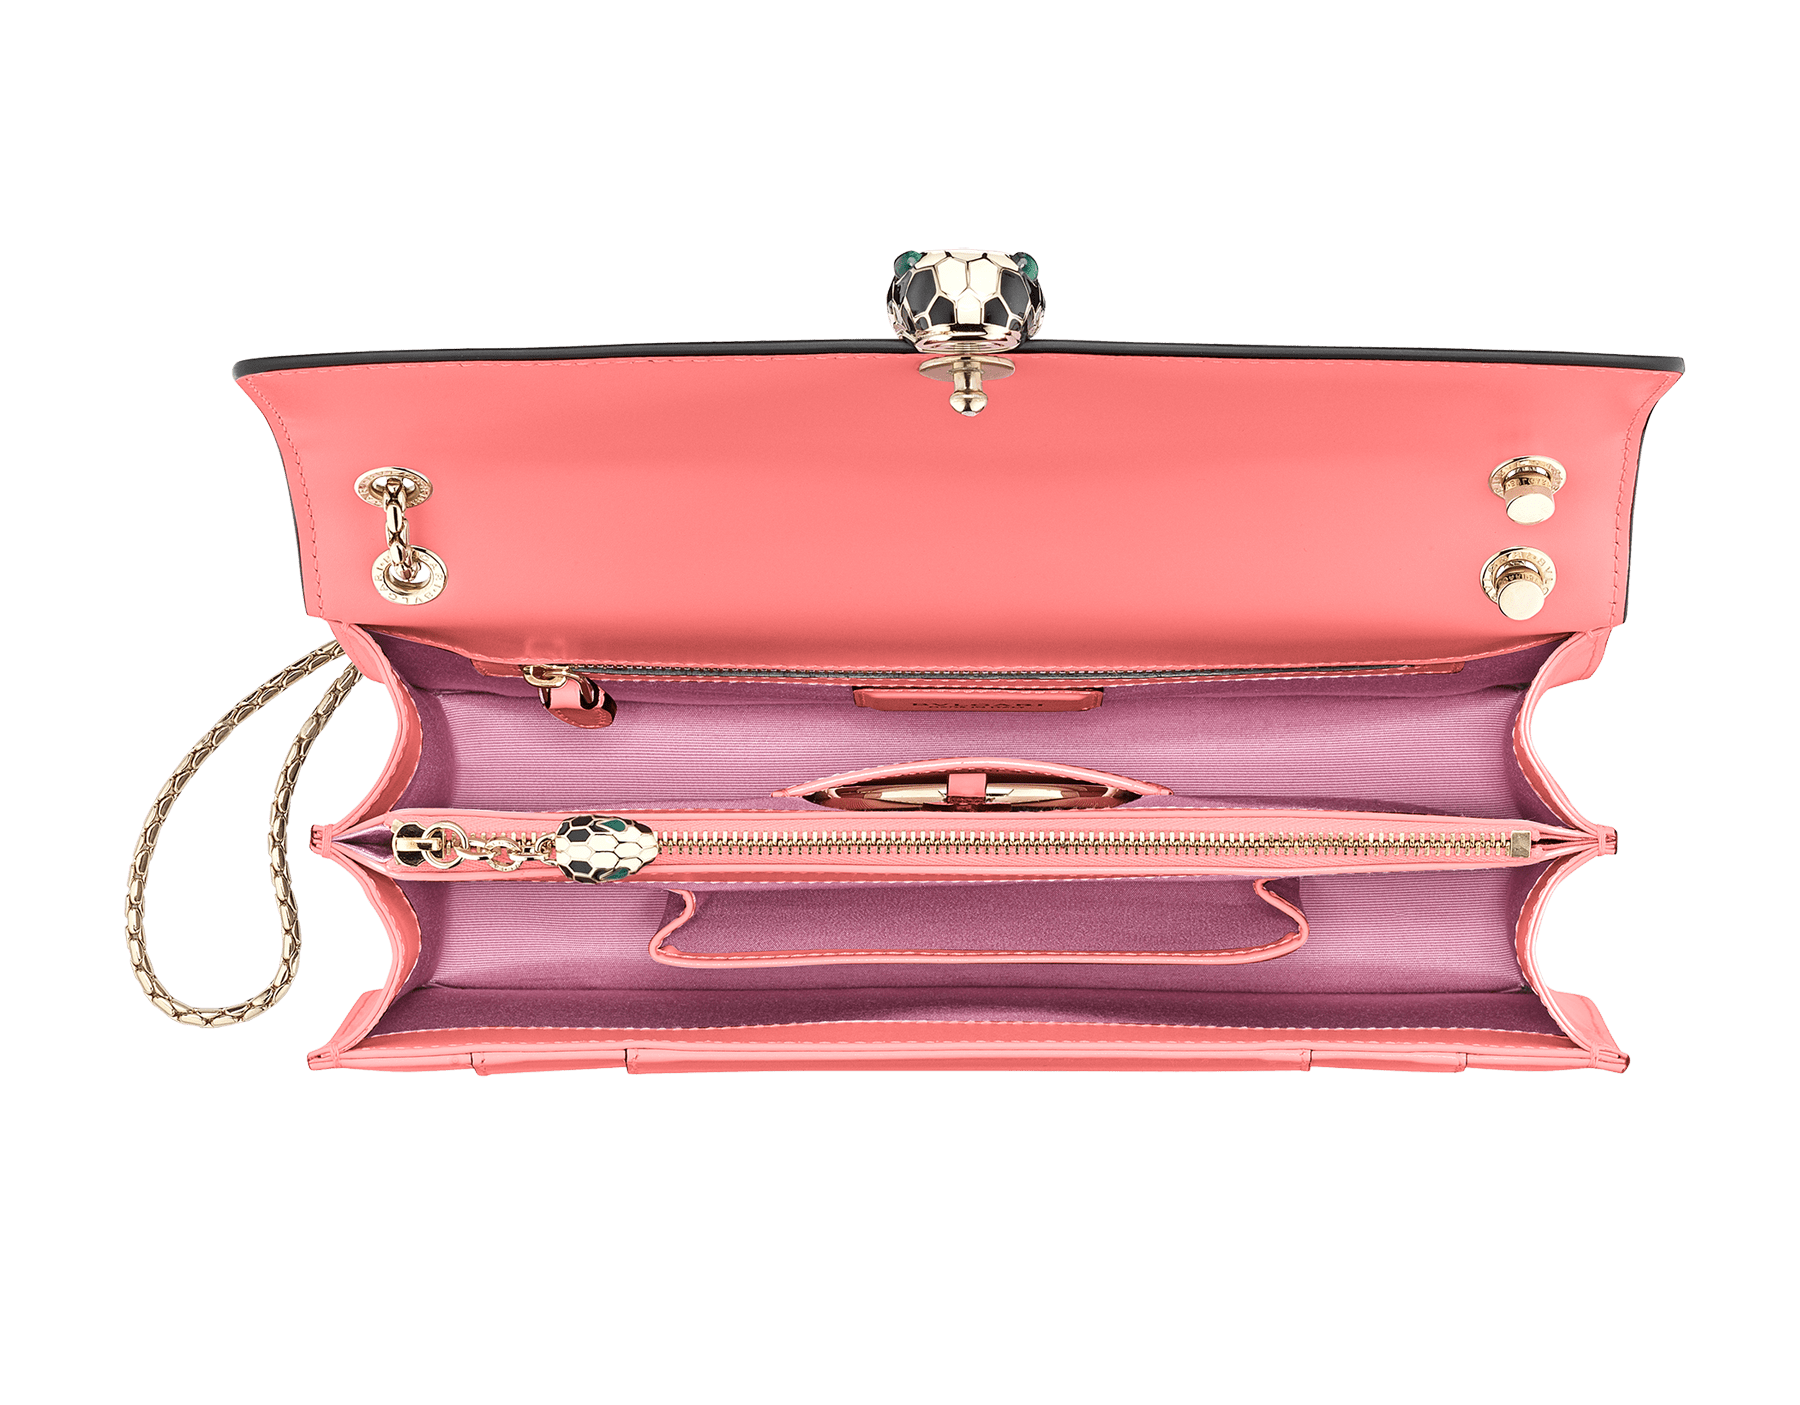 Serpenti Forever shoulder bag in silky coral calf leather. Iconic snakehead closure in light gold plated brass embellished with black and white enamel and green malachite eyes. 288704 image 4